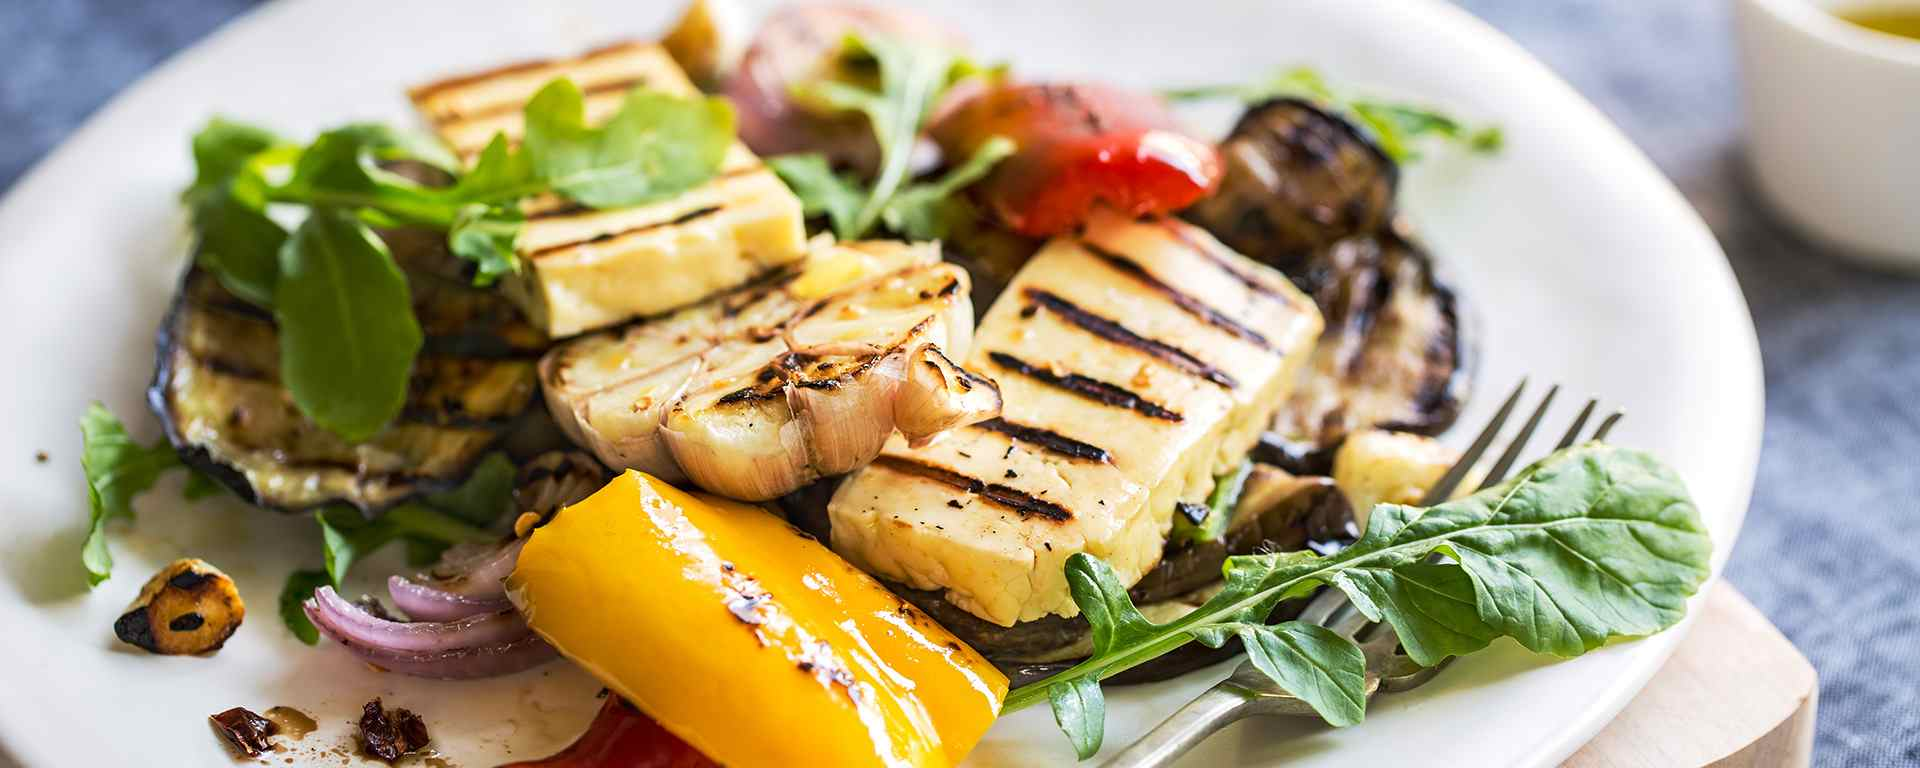 Photo for - Grilled Halloumi Cheese & Vegetable Salad